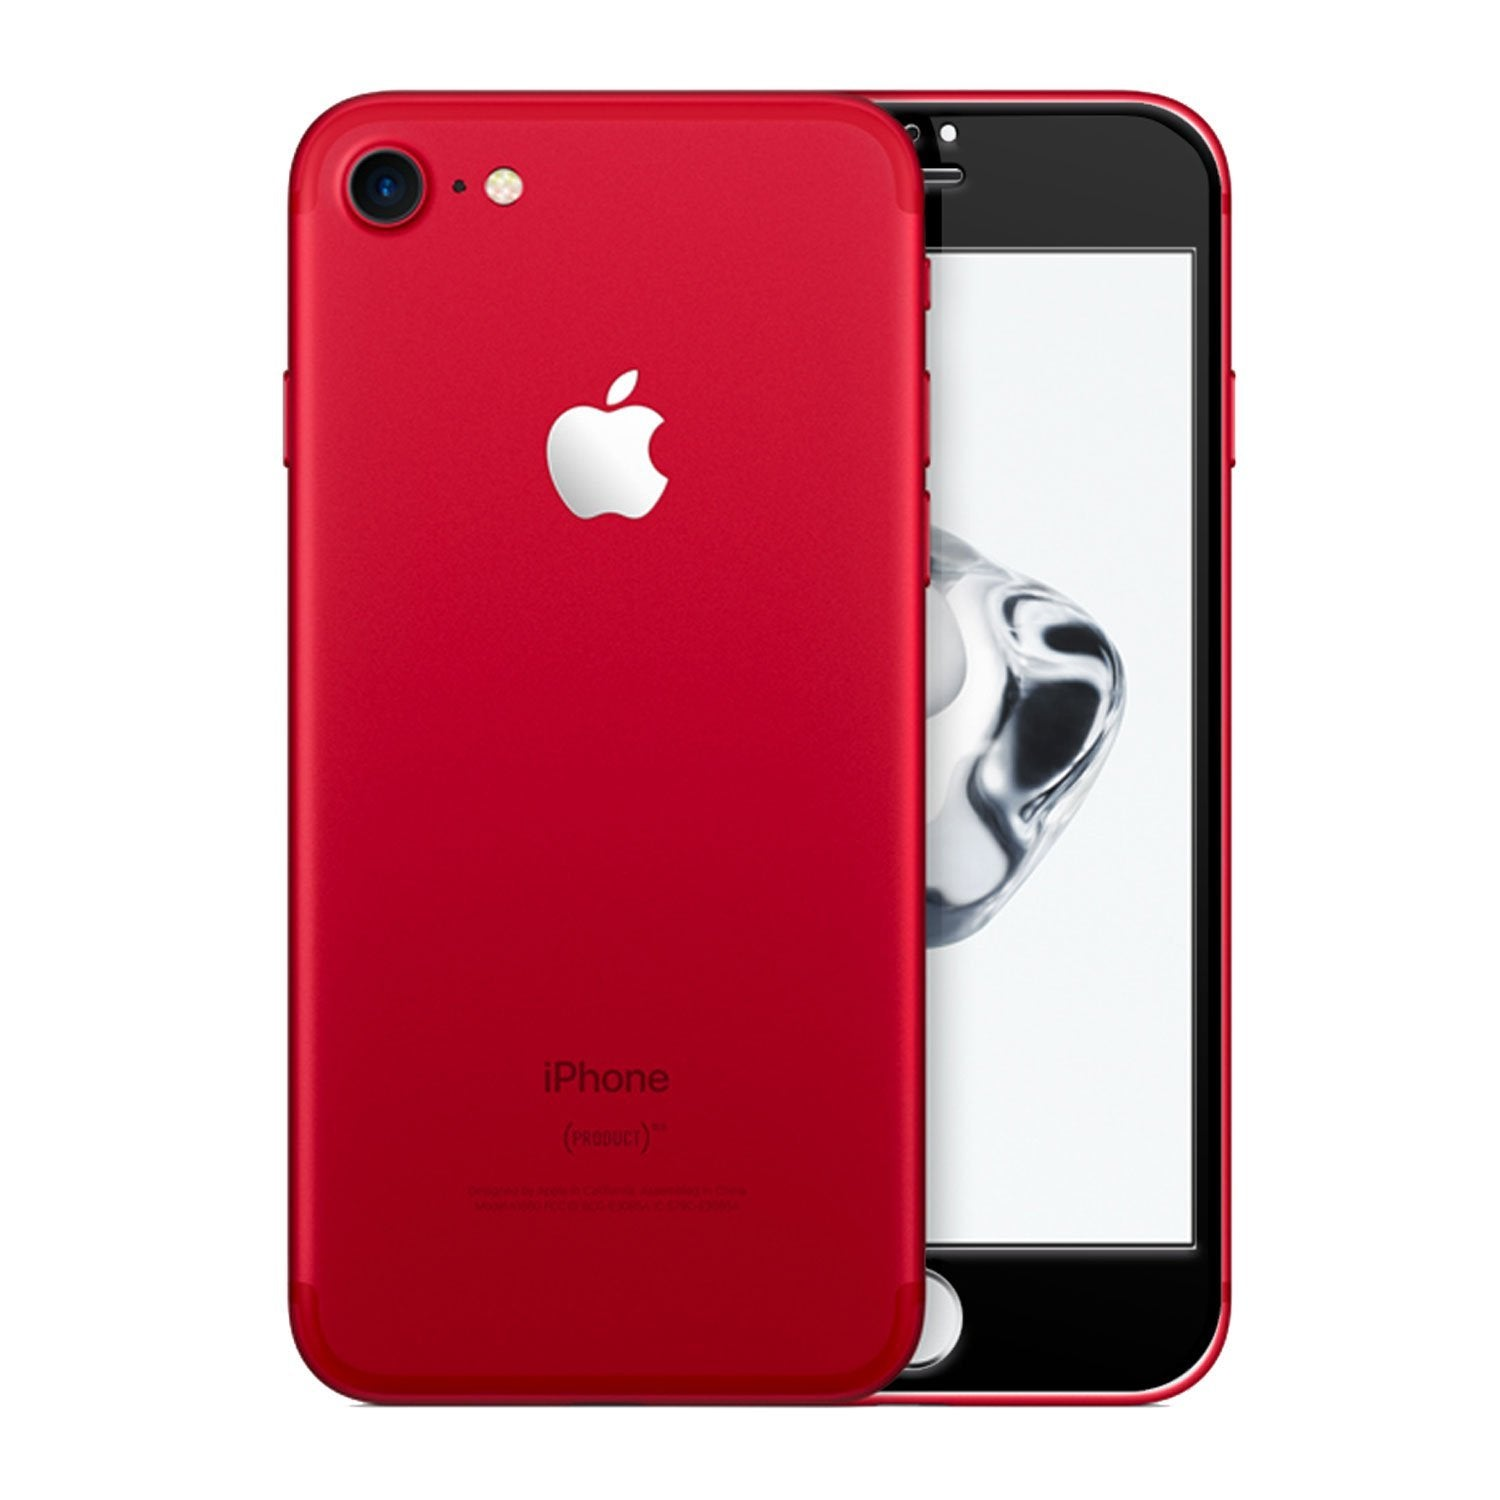 iPhone 7 128GB Red - Condition Very Good